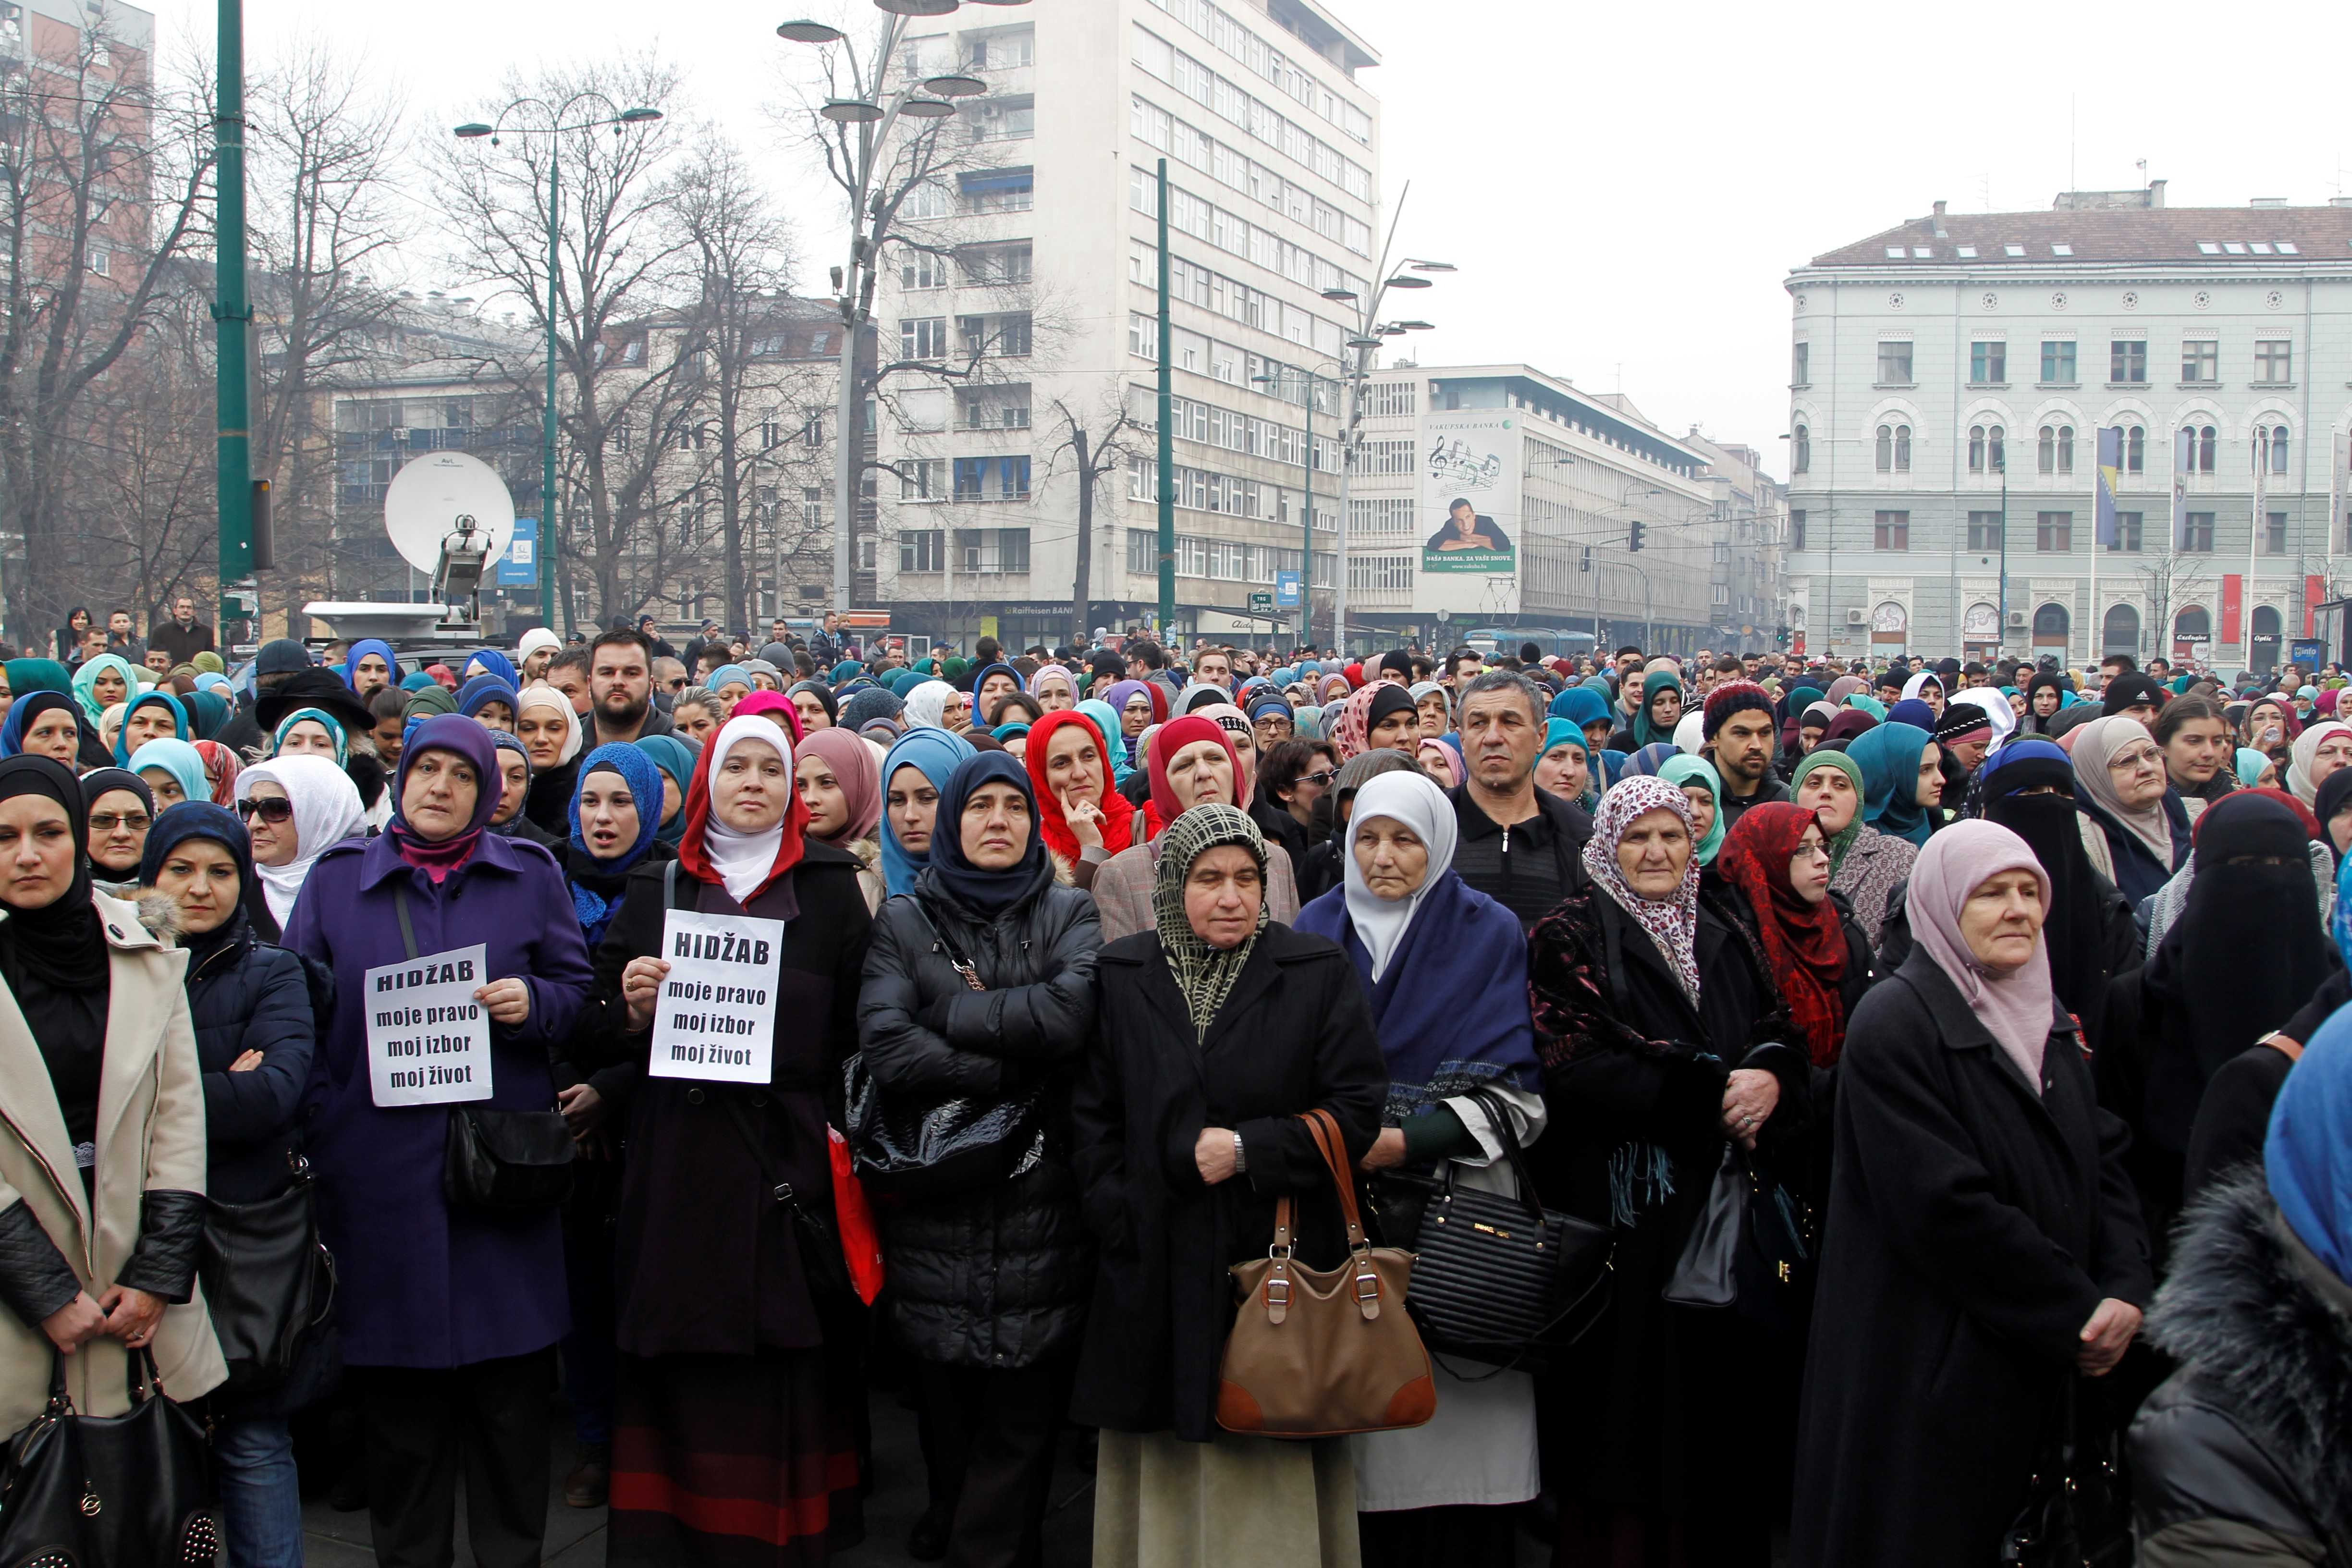 Marchers protest the decision to ban the display of religious symbols by employees of judicial institutions in Bosnia and Herzegovina. (AFP)